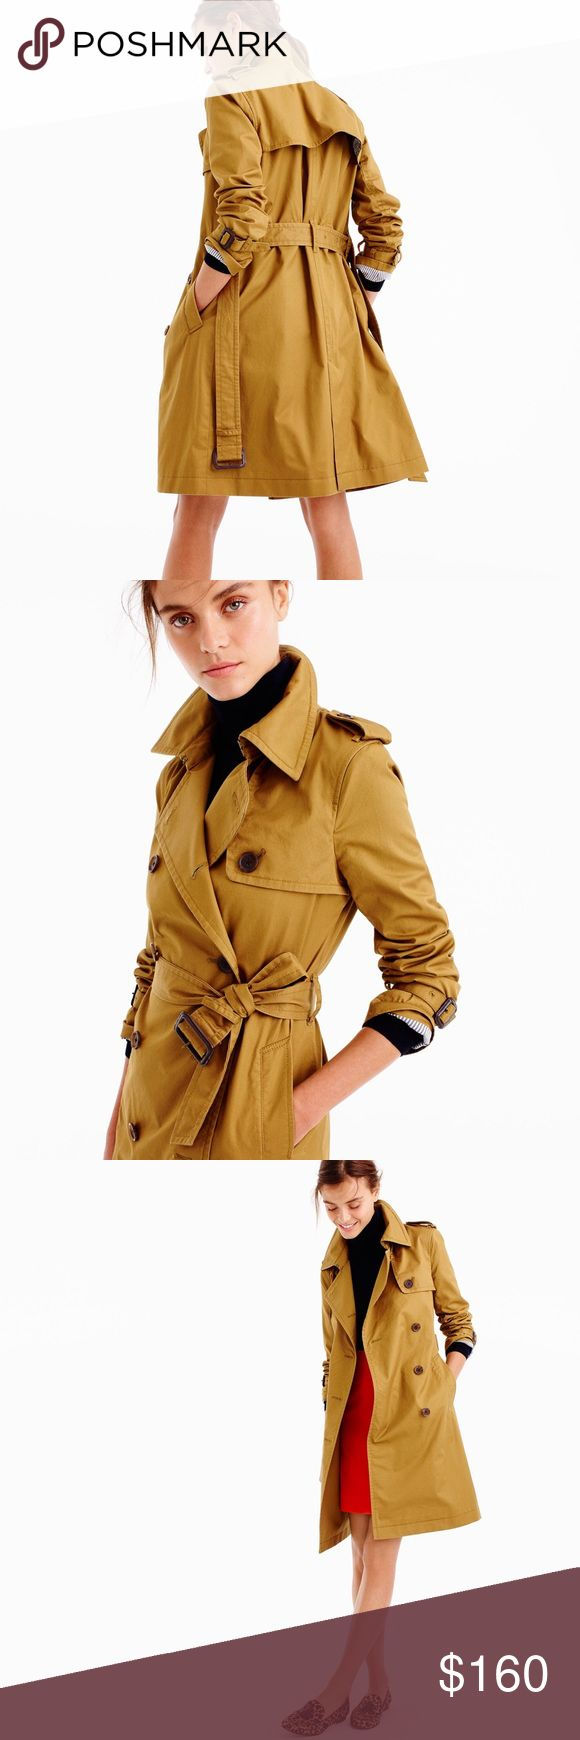 "J.Crew • classic dark khaki trench coat Complete an outfit with this lightweight trench coat by J.Crew. Features front double-breasted button closure, navy striped lining and removable belt. Size 8 may run slightly large due to relaxed fit. Outer fabric is 100% cotton. In new condition.   Measurements laying flat:  • Length: 37 1/2""  • Bust: 19 1/2"" (length from L to R armpit)  • Sleeve length: 24 1/2""  Please don't hesitate to ask questions. ❥ J. Crew Jackets & Coats Trench Coats"